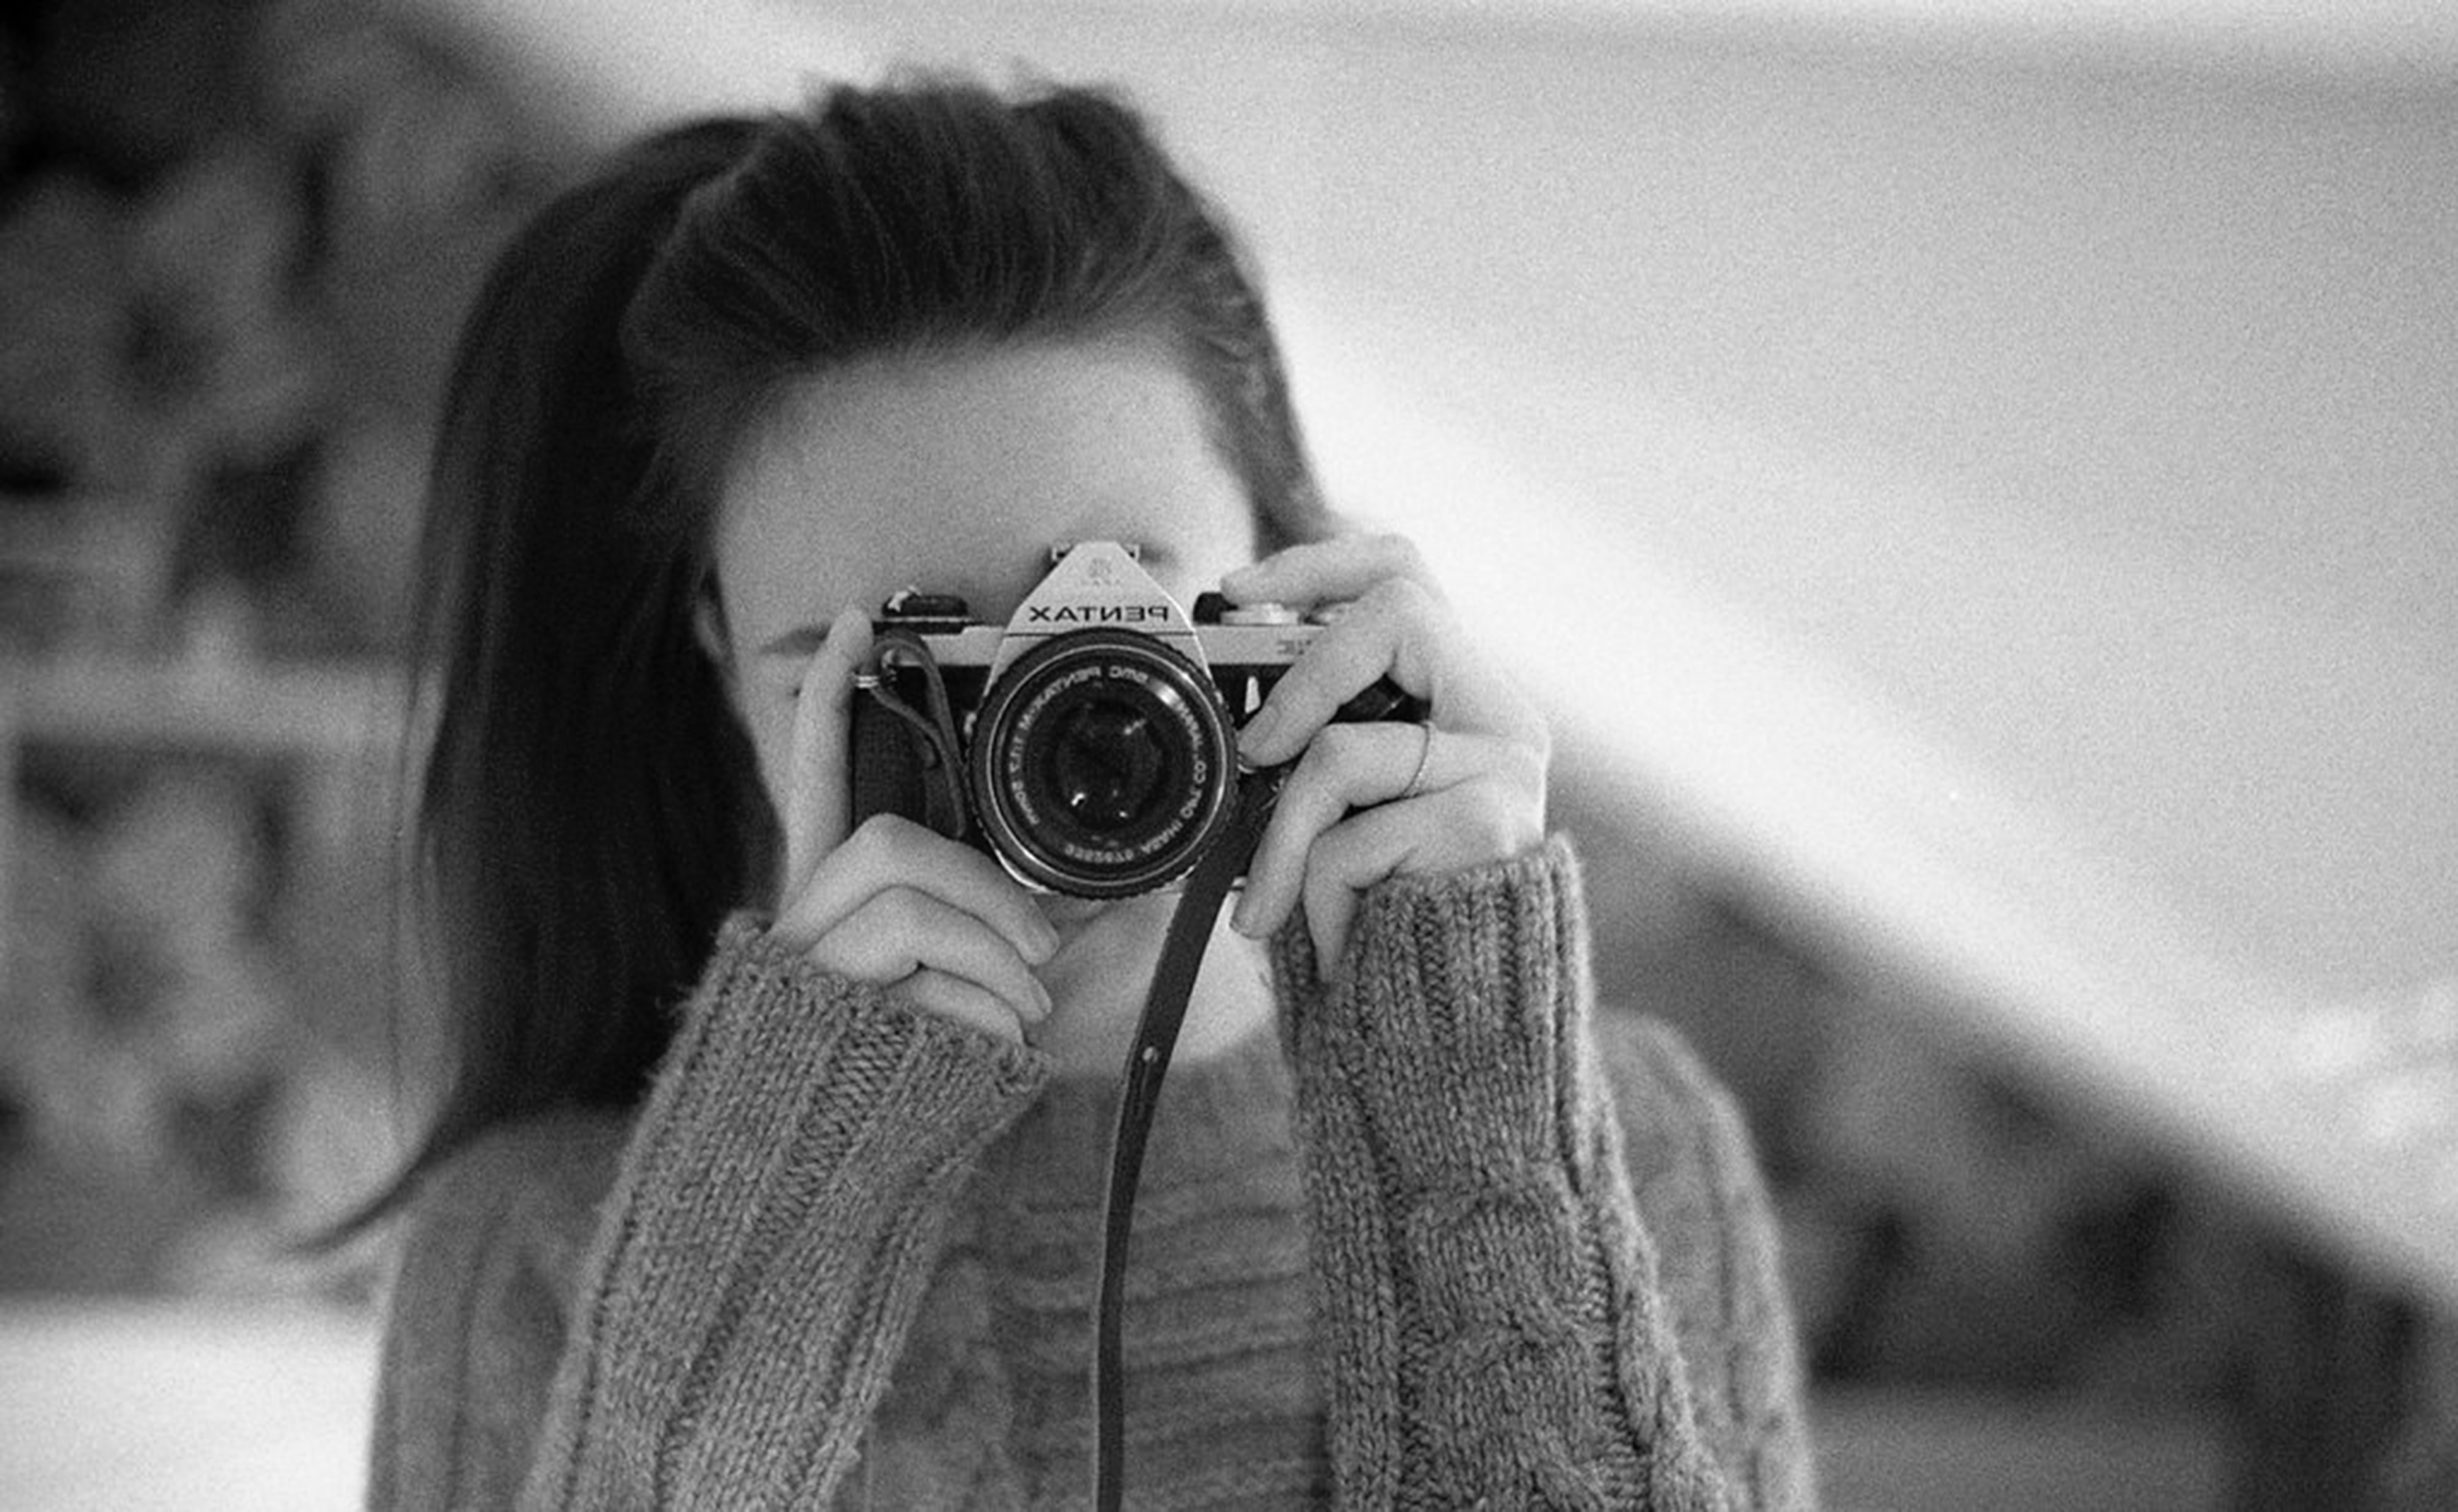 grayscale photography of woman wearing long-sleeved shirt using camera